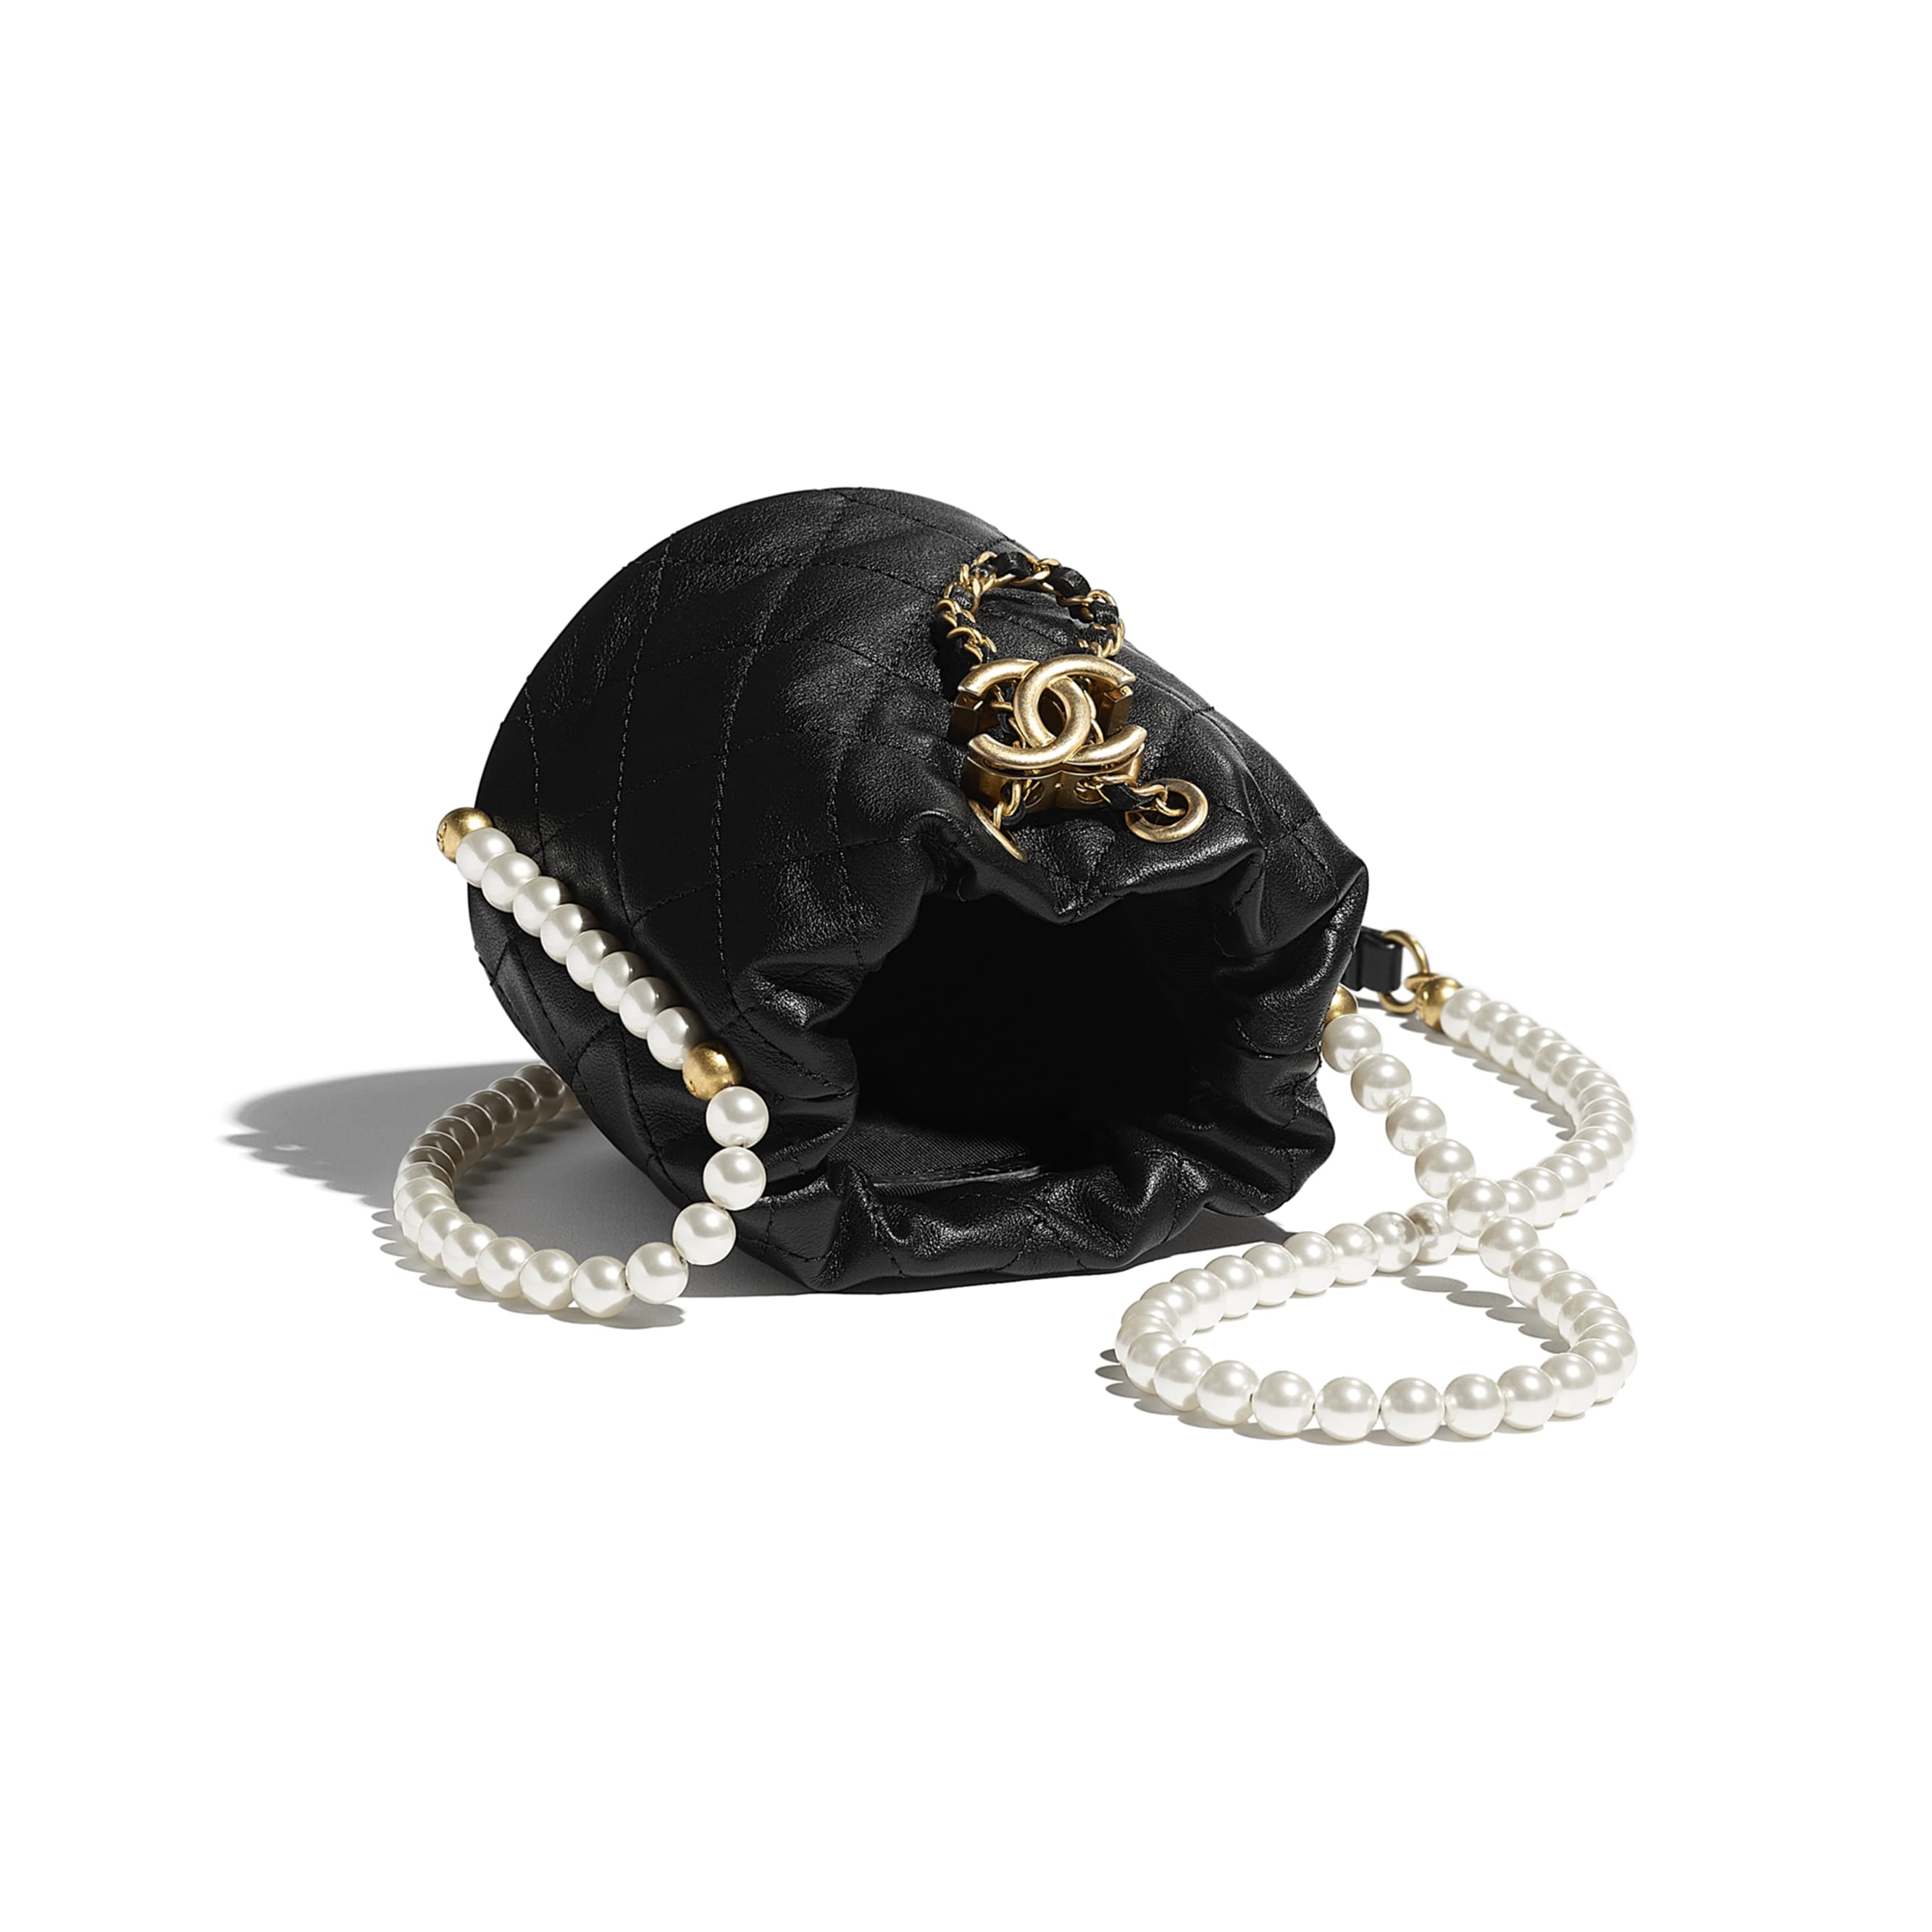 Mini Drawstring Bag - Black - Calfskin, Imitation Pearls & Gold-Tone Metal - CHANEL - Other view - see standard sized version